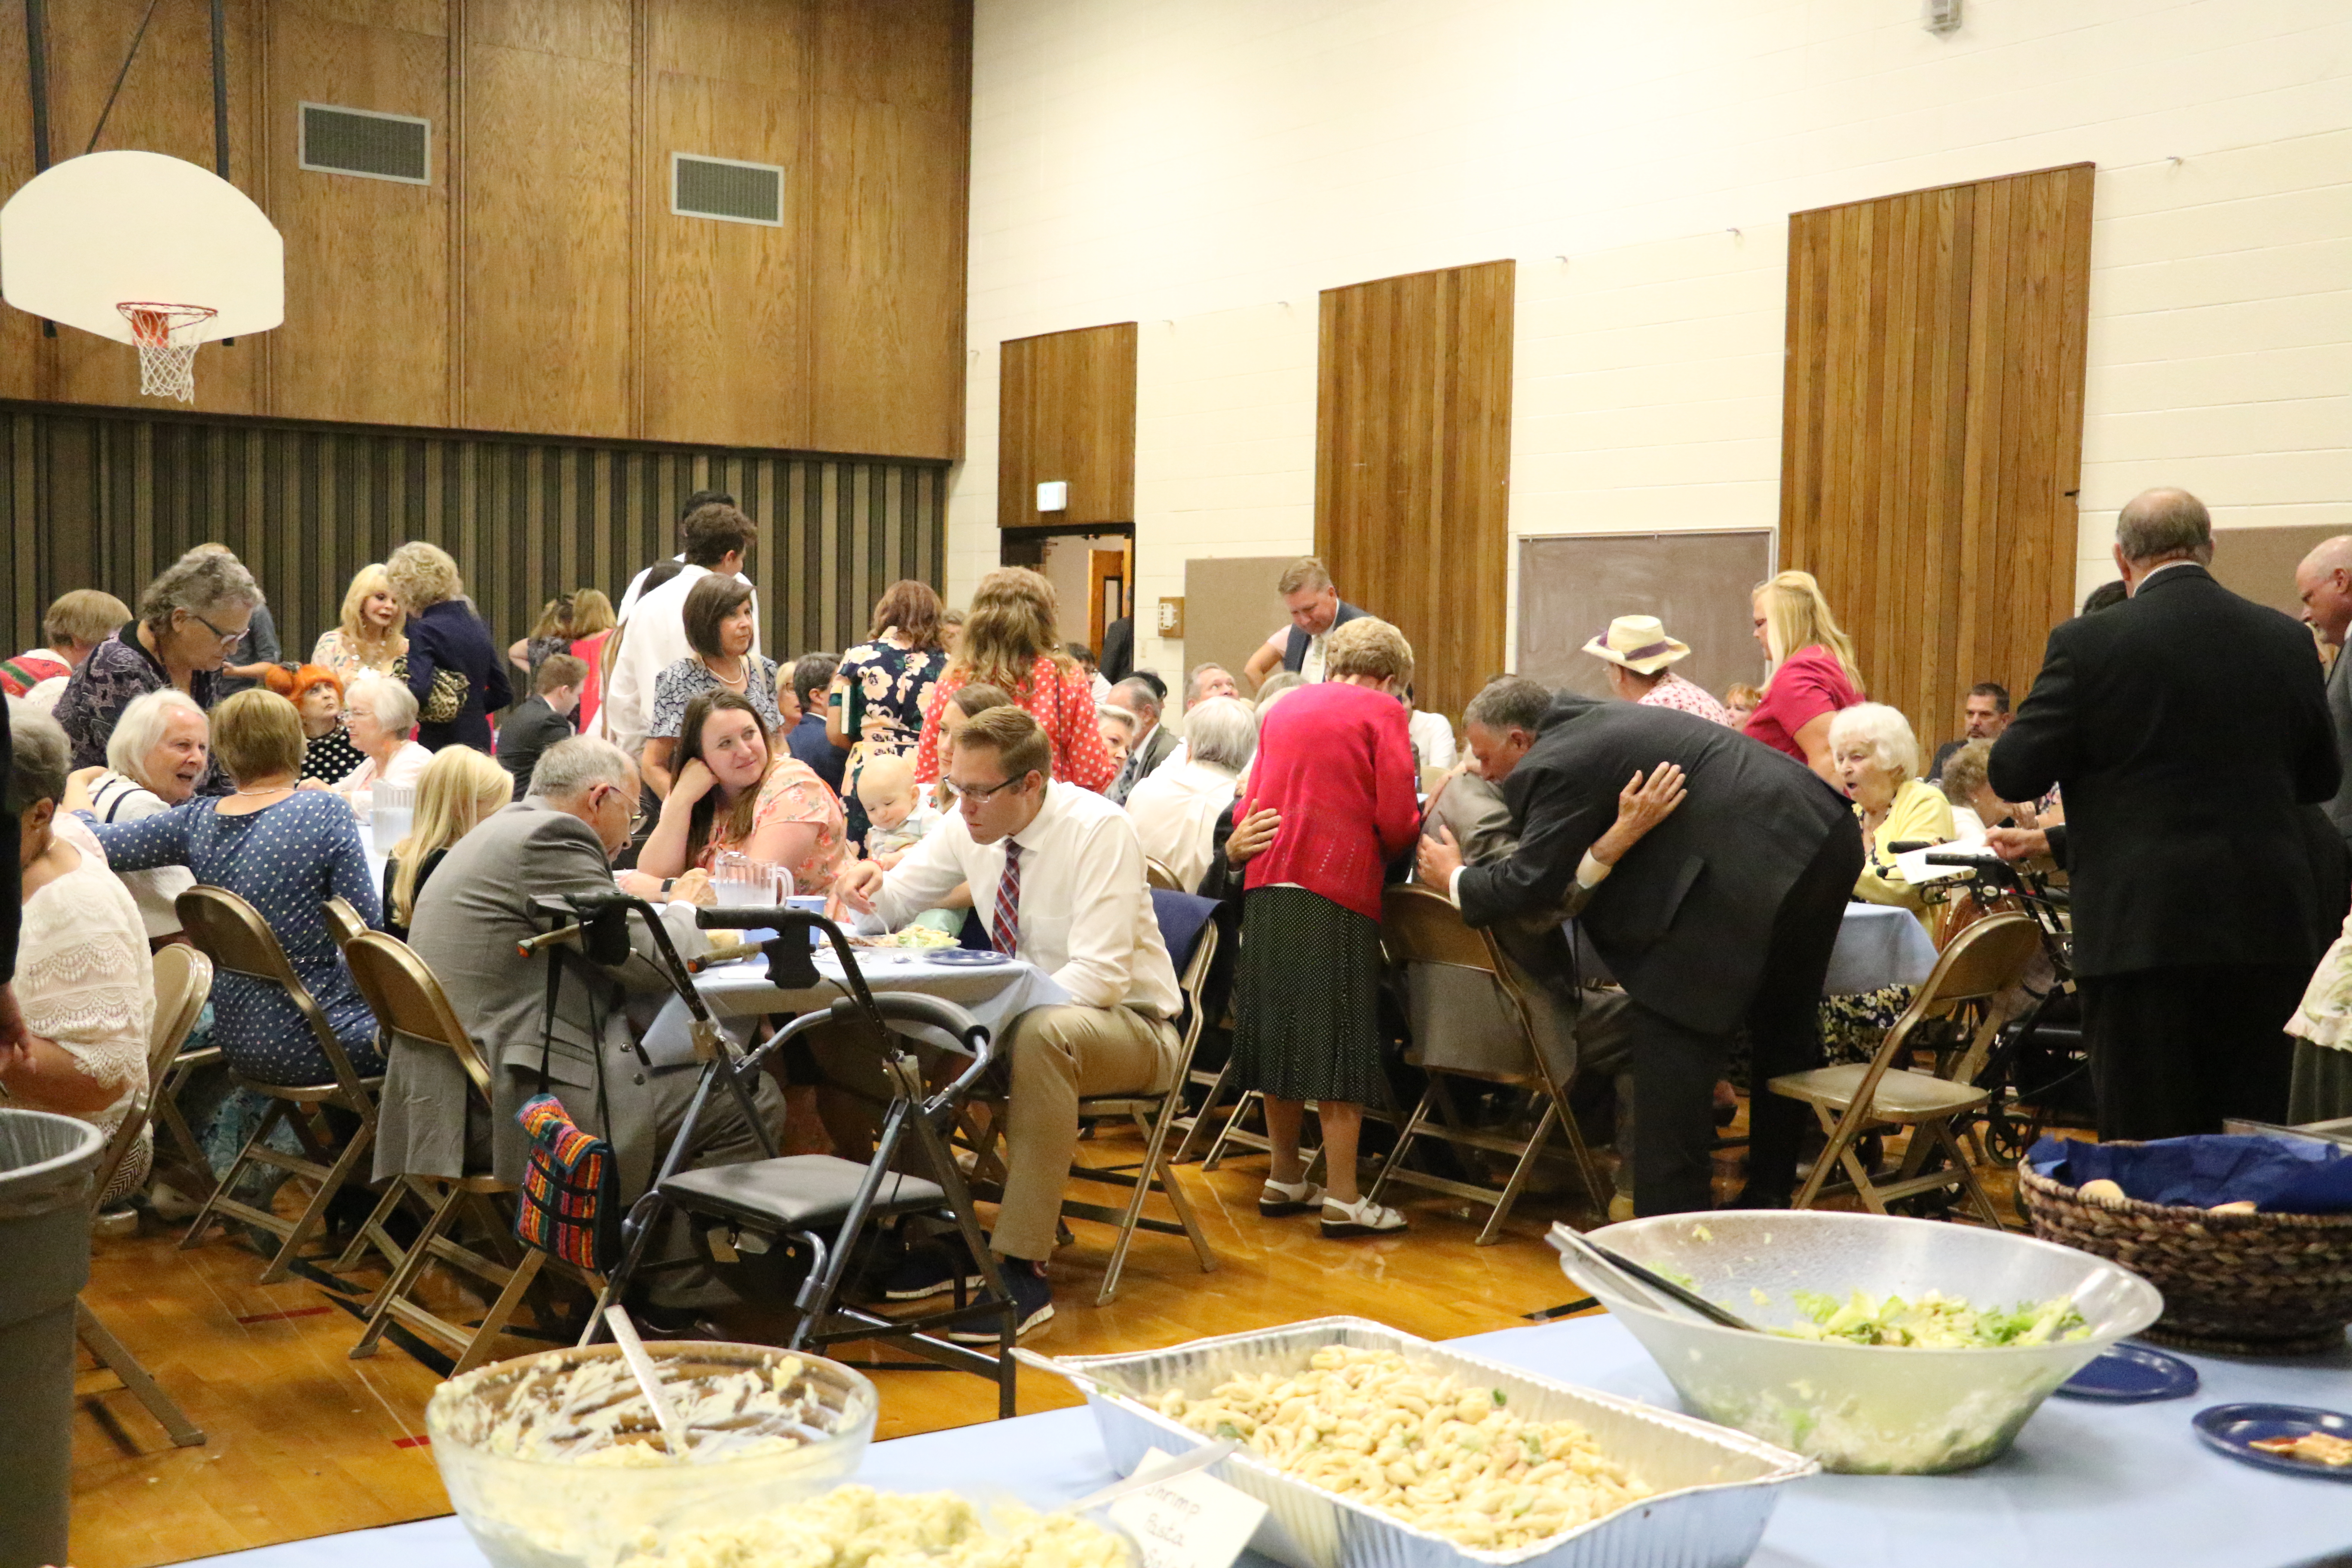 Family and friends gather in the cultural hall to enjoy food and each other's company after the German Speaking Ward's final sacrament meeting on July 14, 2019.